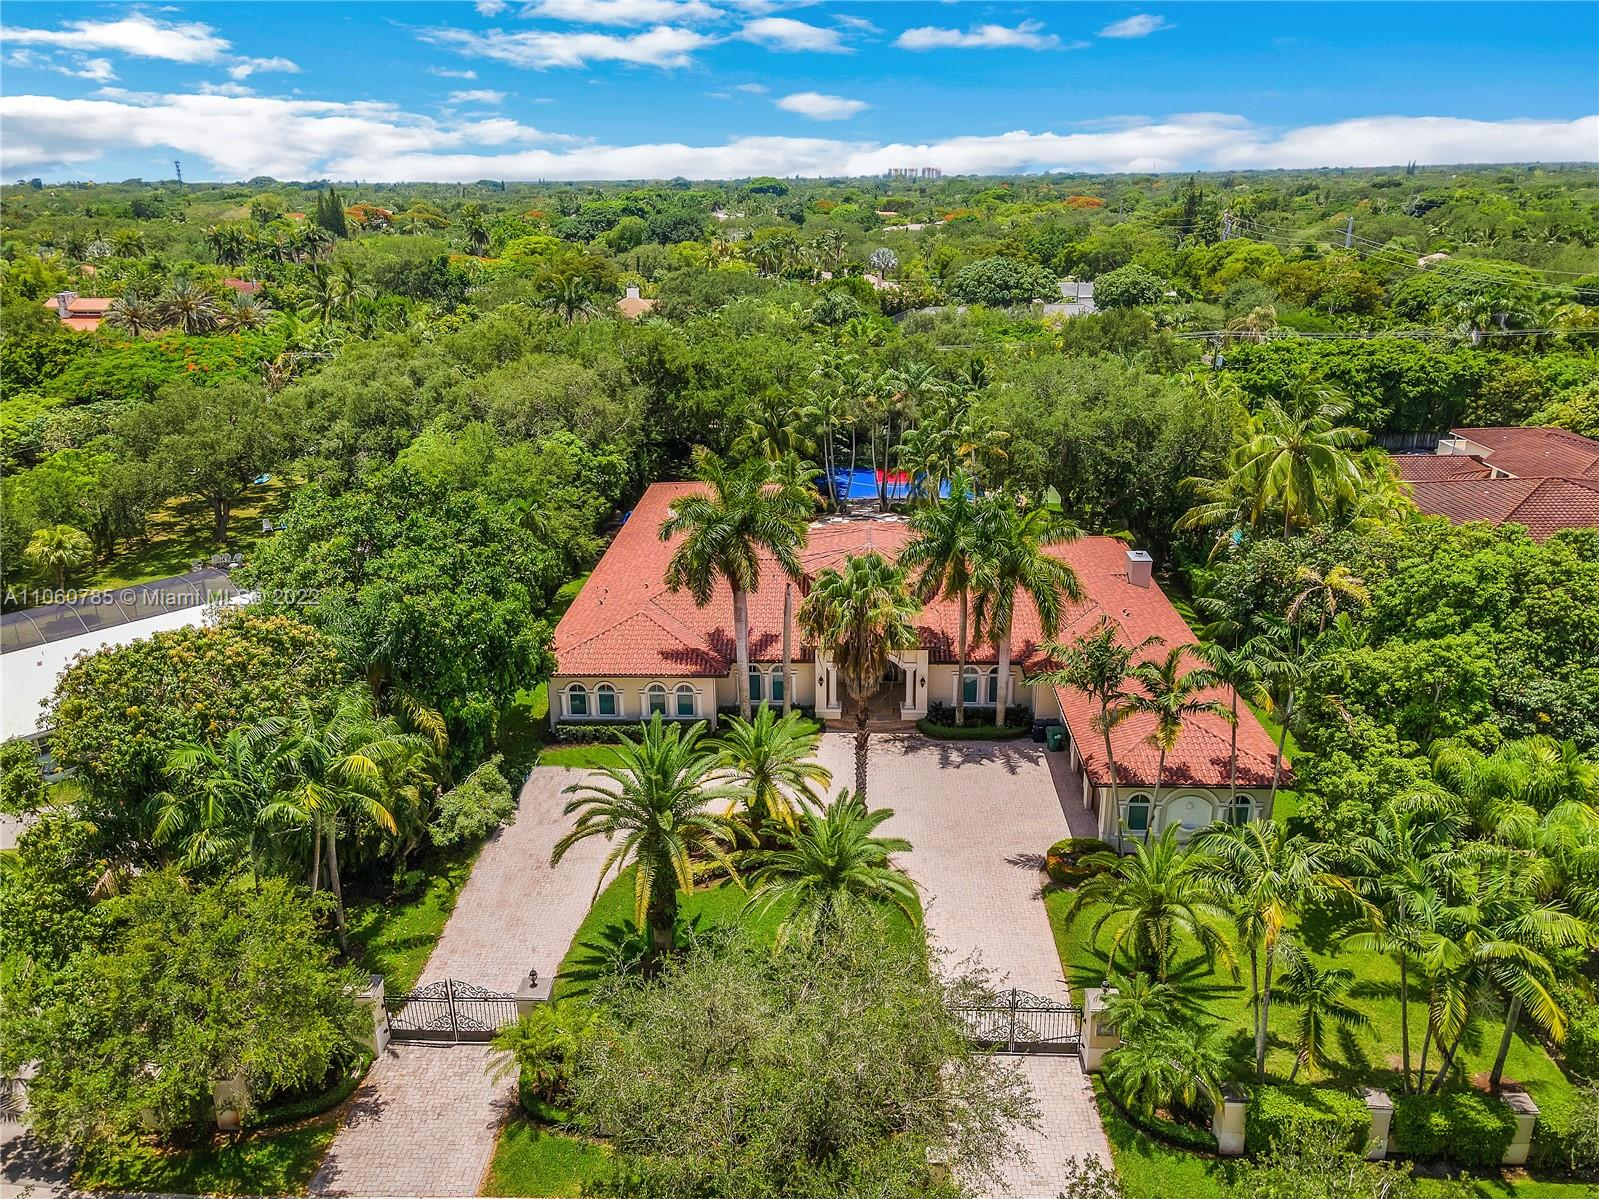 Stunning 1-story home recently remodeled in NE Pinecrest! This home sits on over 1 acre with a half court for the NBA enthusiast. Plenty of privacy with hedges surrounding the property and electric gate at entrance. 3-car garage, 6 bedrooms on one side of the home and an additional service/guest room on the opposite side, laundry room, remodeled kitchen and bathrooms, etc. The perfect home for a large family that wants to be minutes from the best schools Miami has to offer.